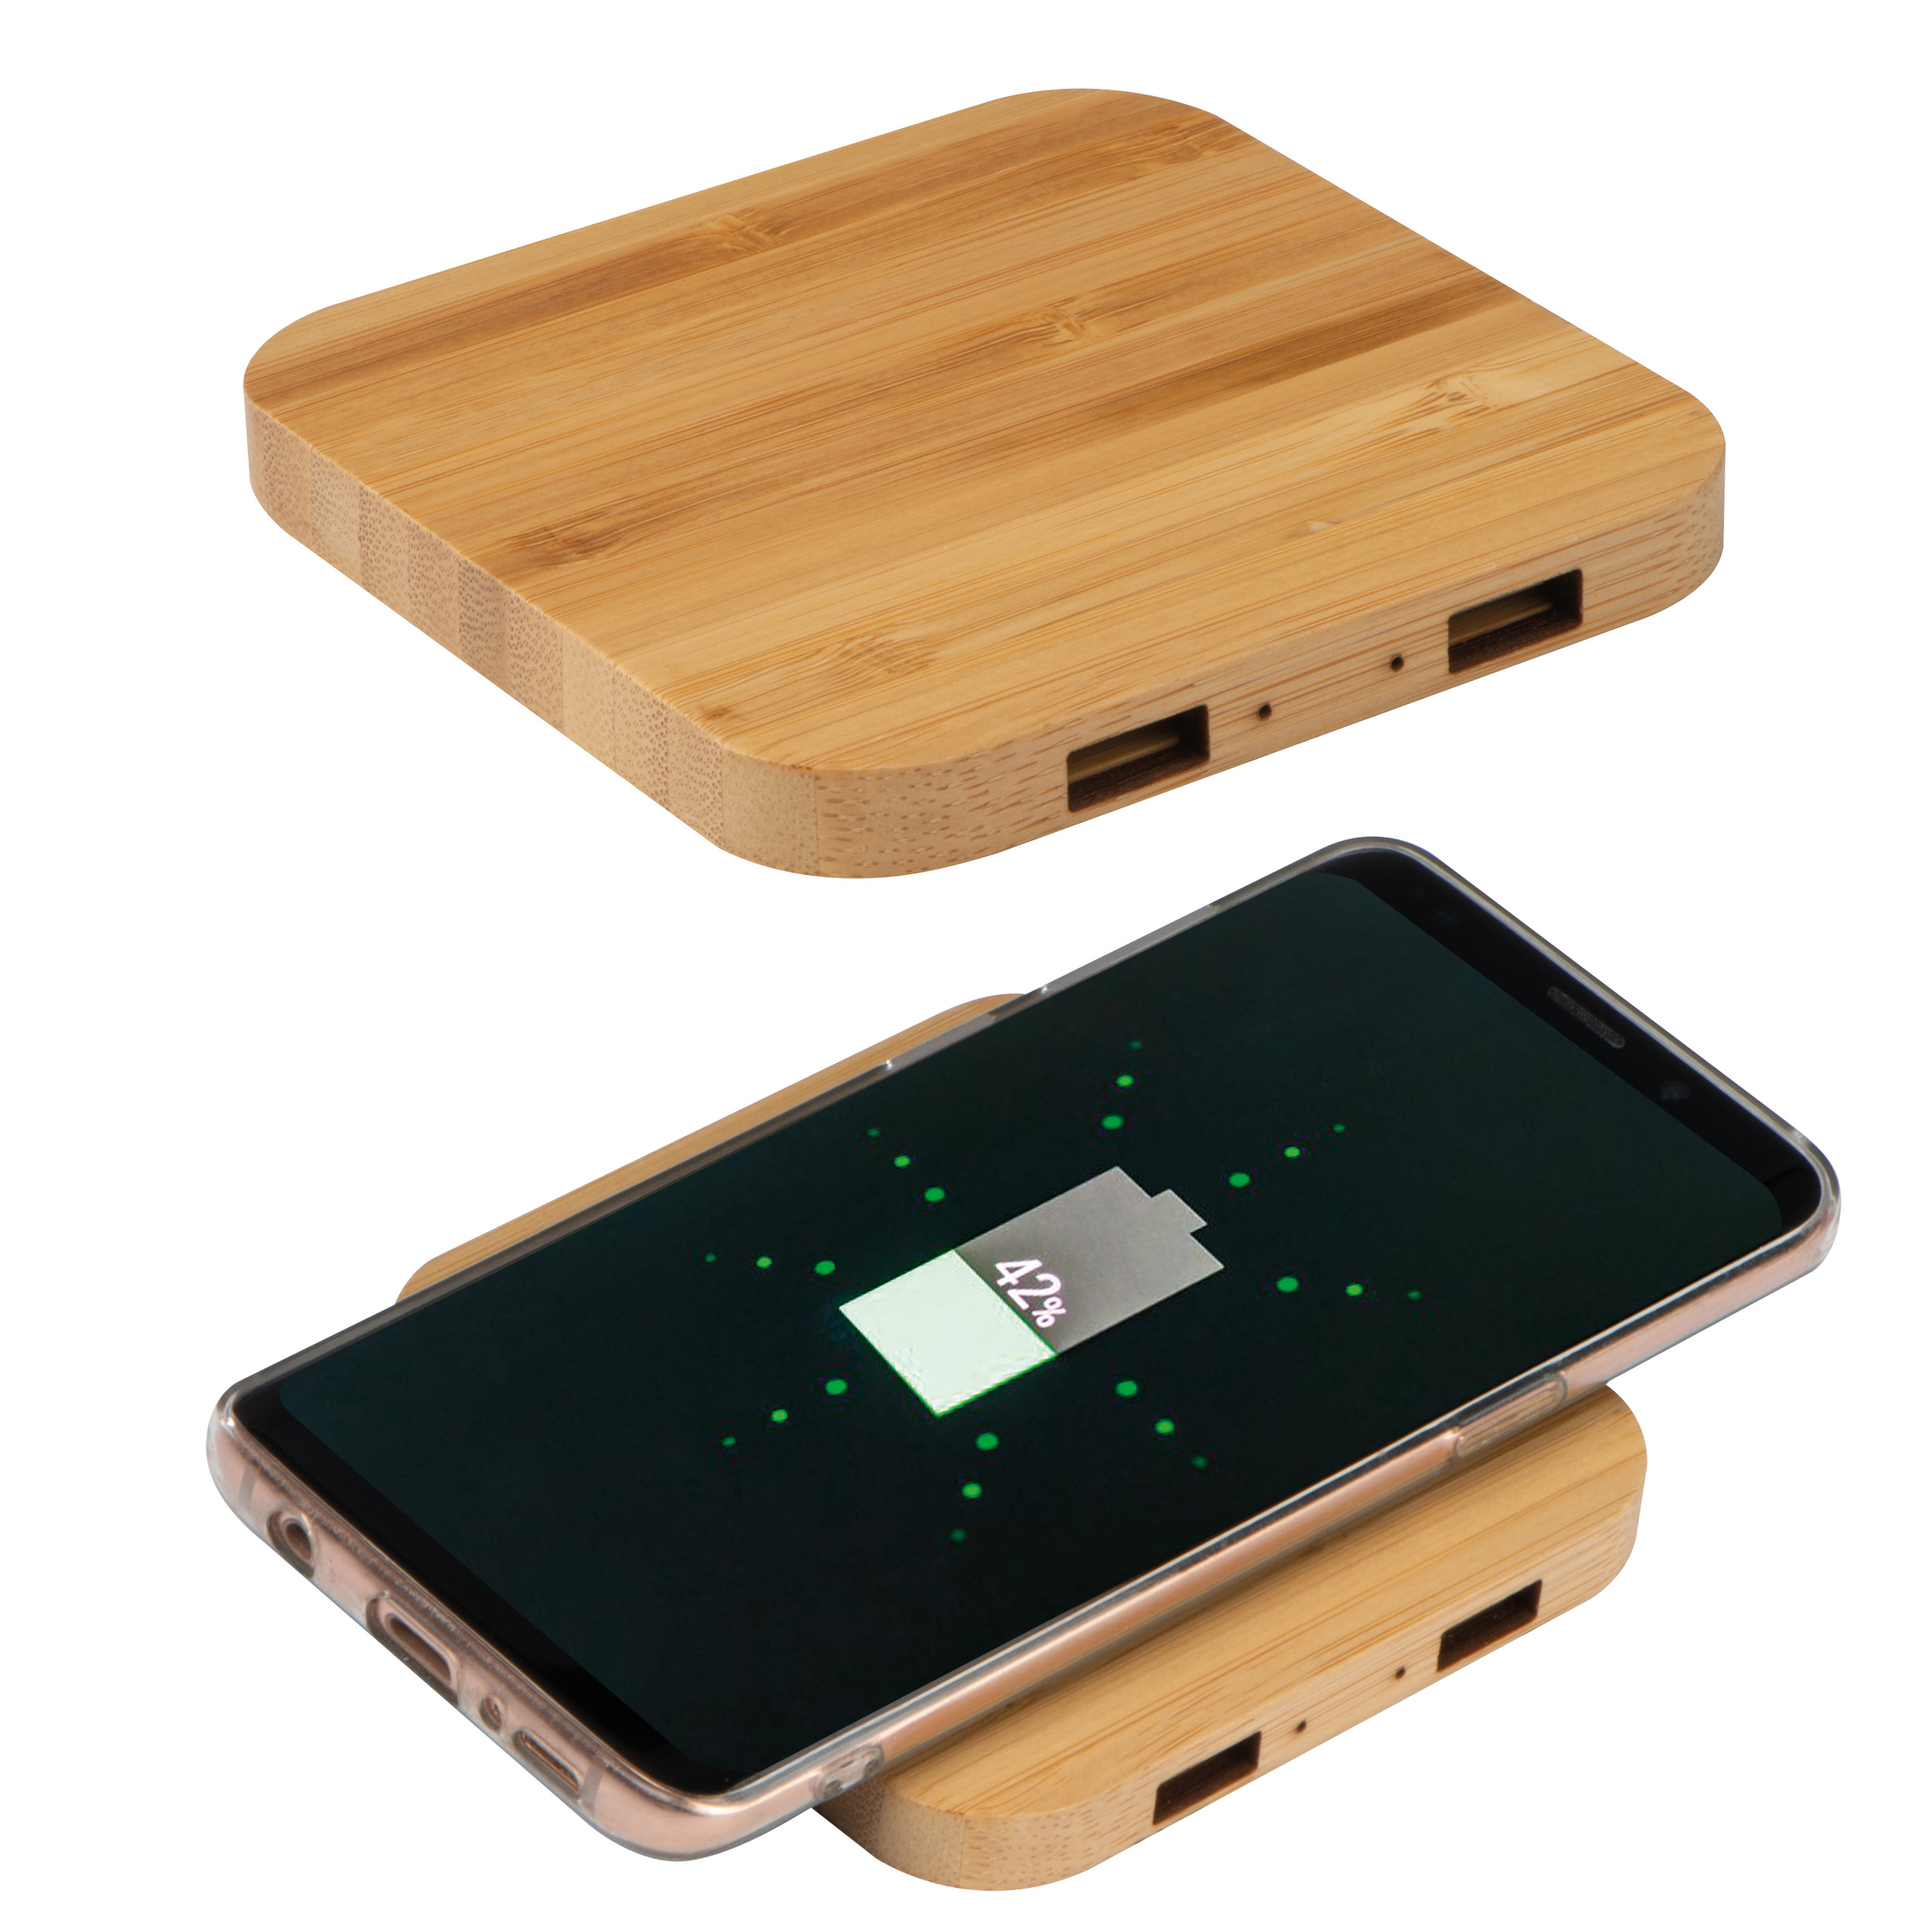 Bamboo Wireless Charger with 2 USB ports